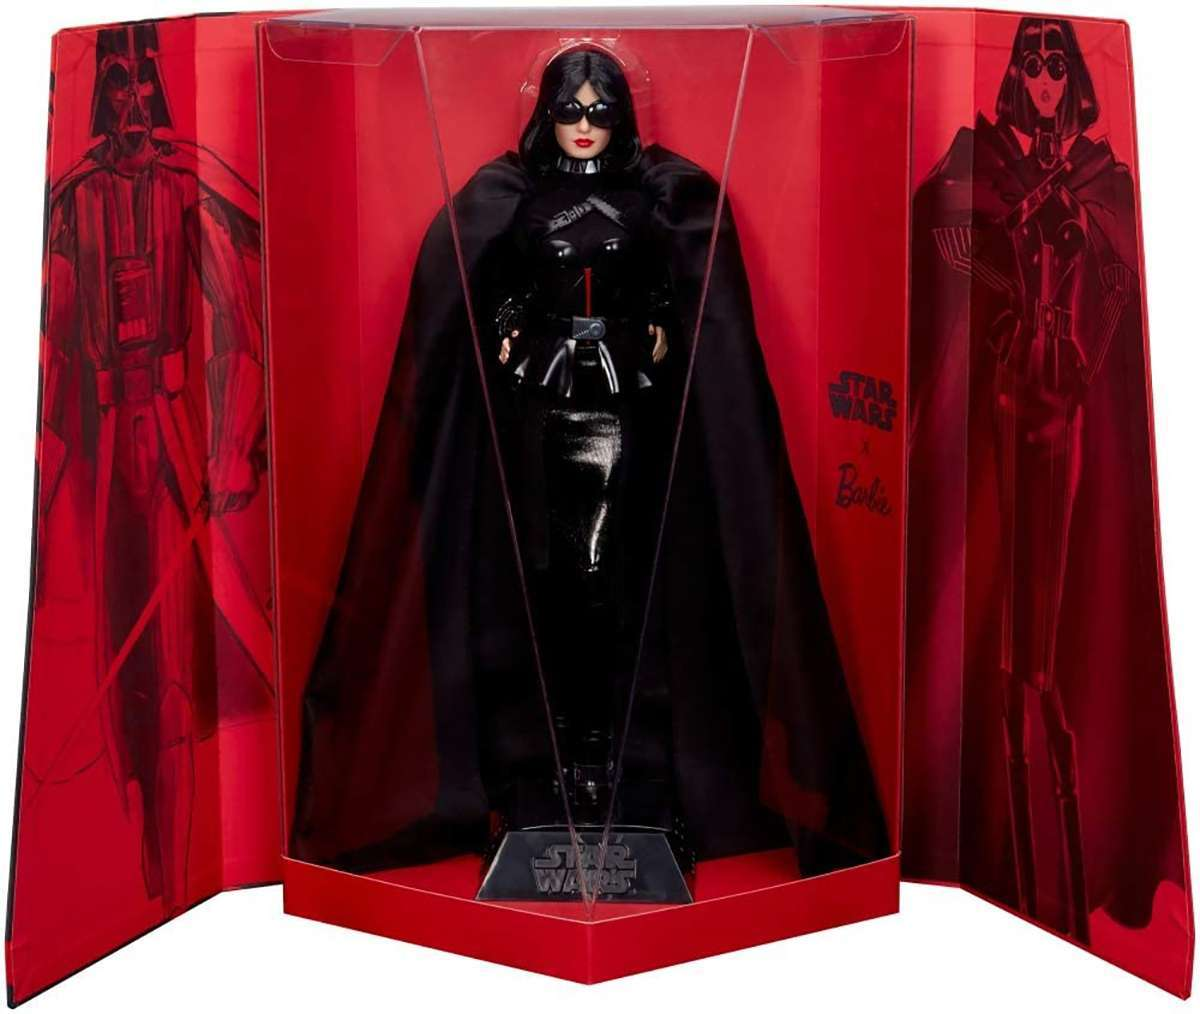 The Star Wars Darth Vader Barbie Doll is 50% off Today Only